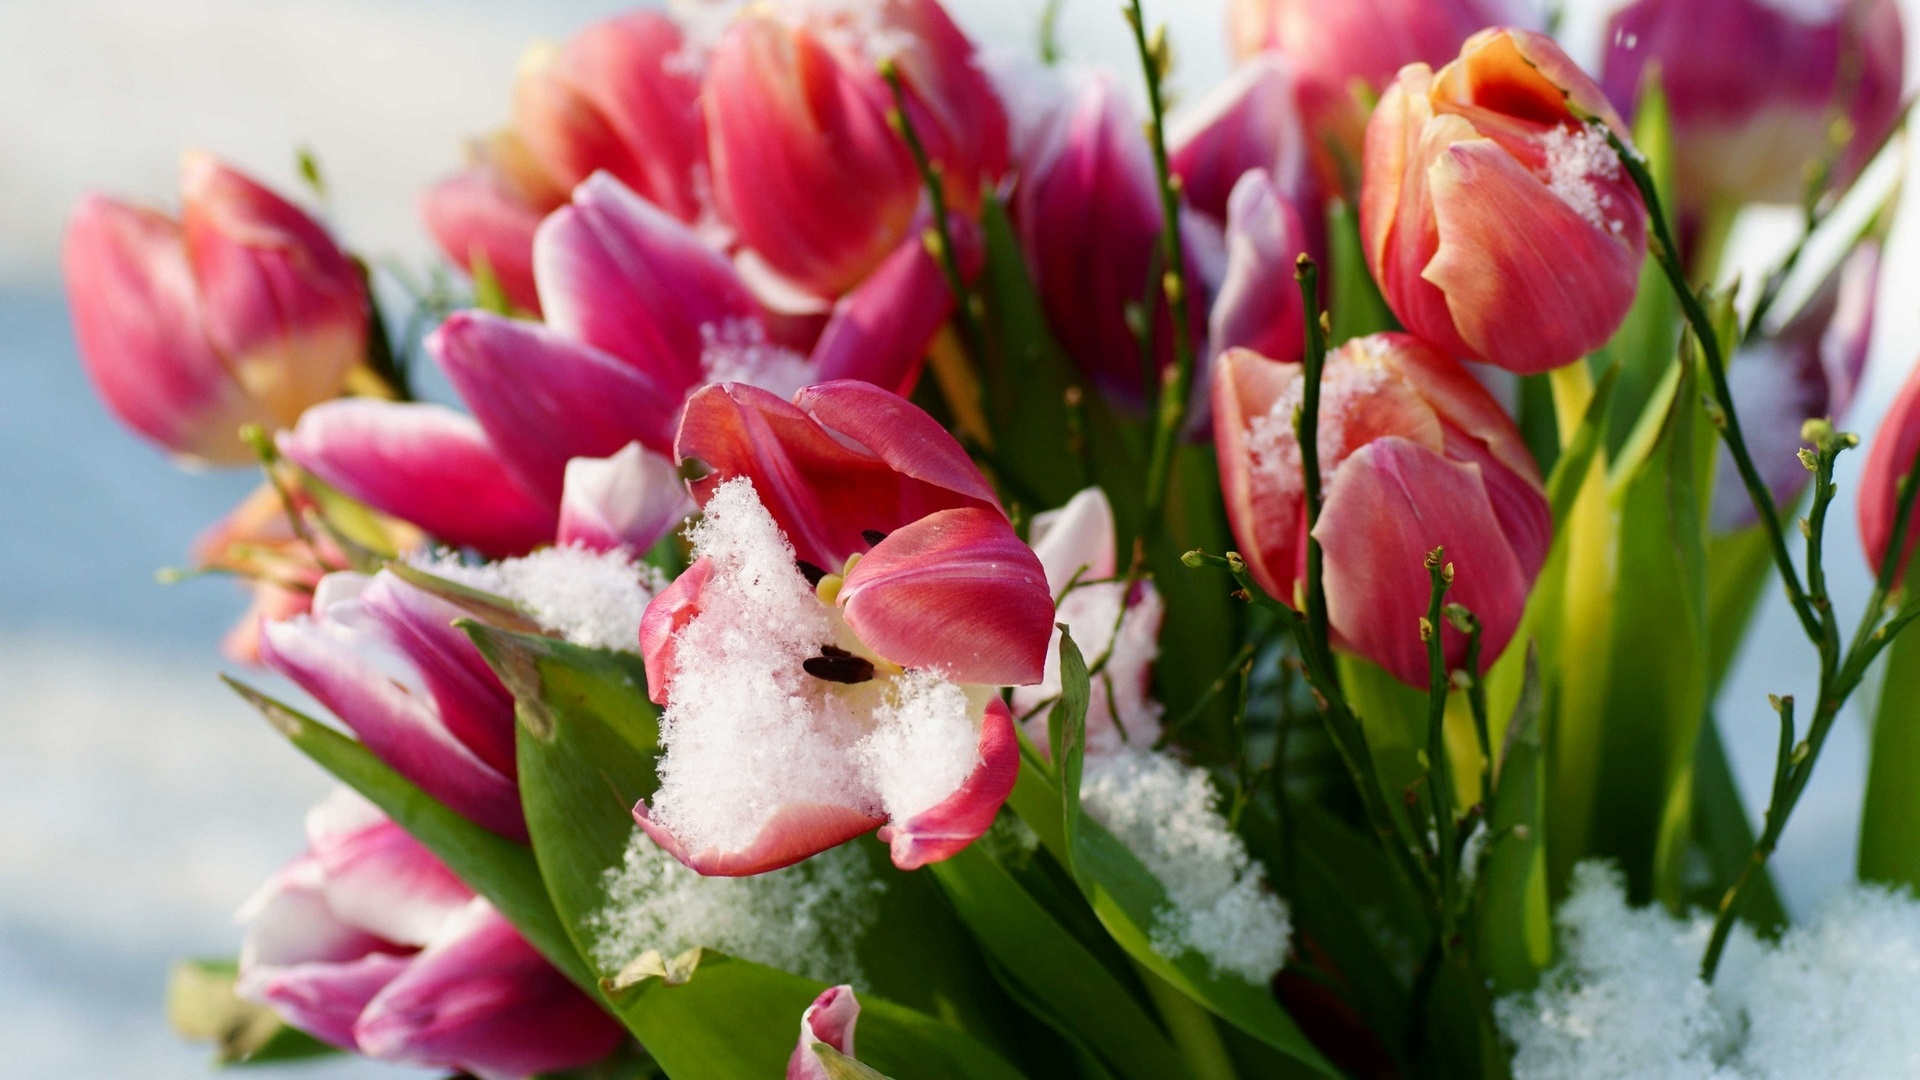 Wallpaper Pink Tulips Flowers Snow Winter 1920x1080 Full